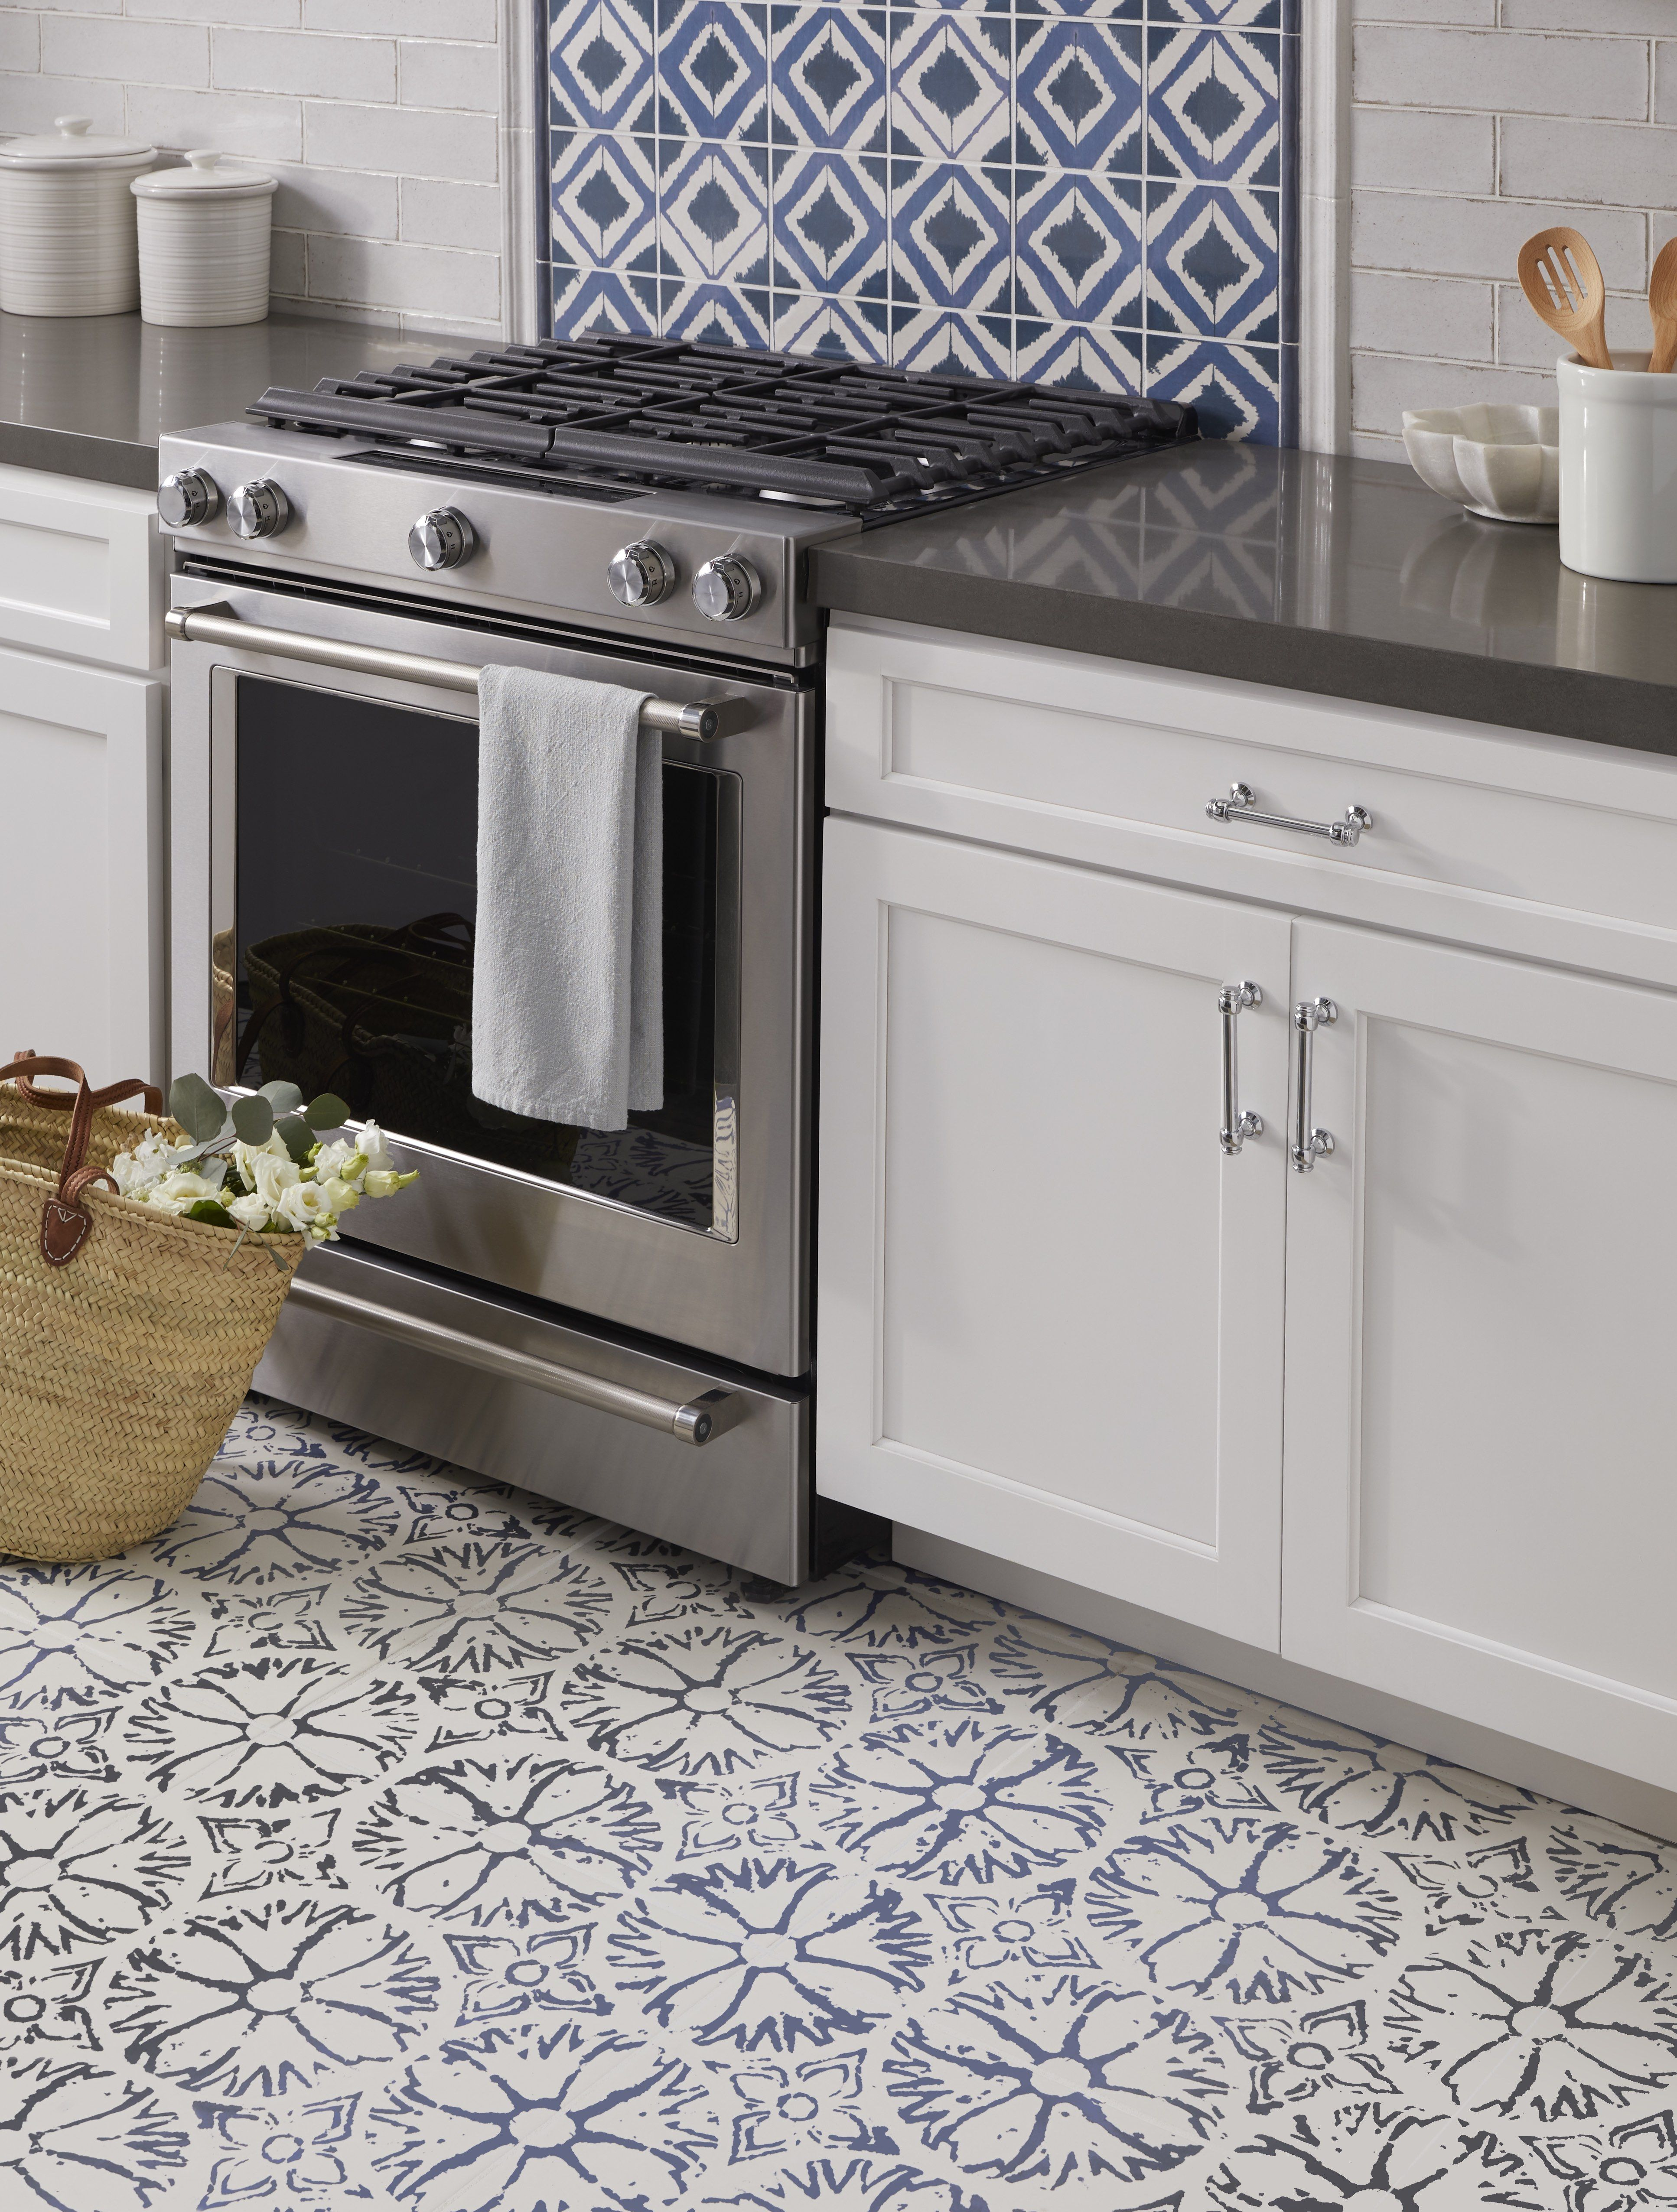 Inspired By Vintage Block Prints Annie Selke Aylin Has A Handmade Printed Linen Look Which Brings An A Kitchen Floor Tile Kitchen Flooring Kitchen Mats Floor